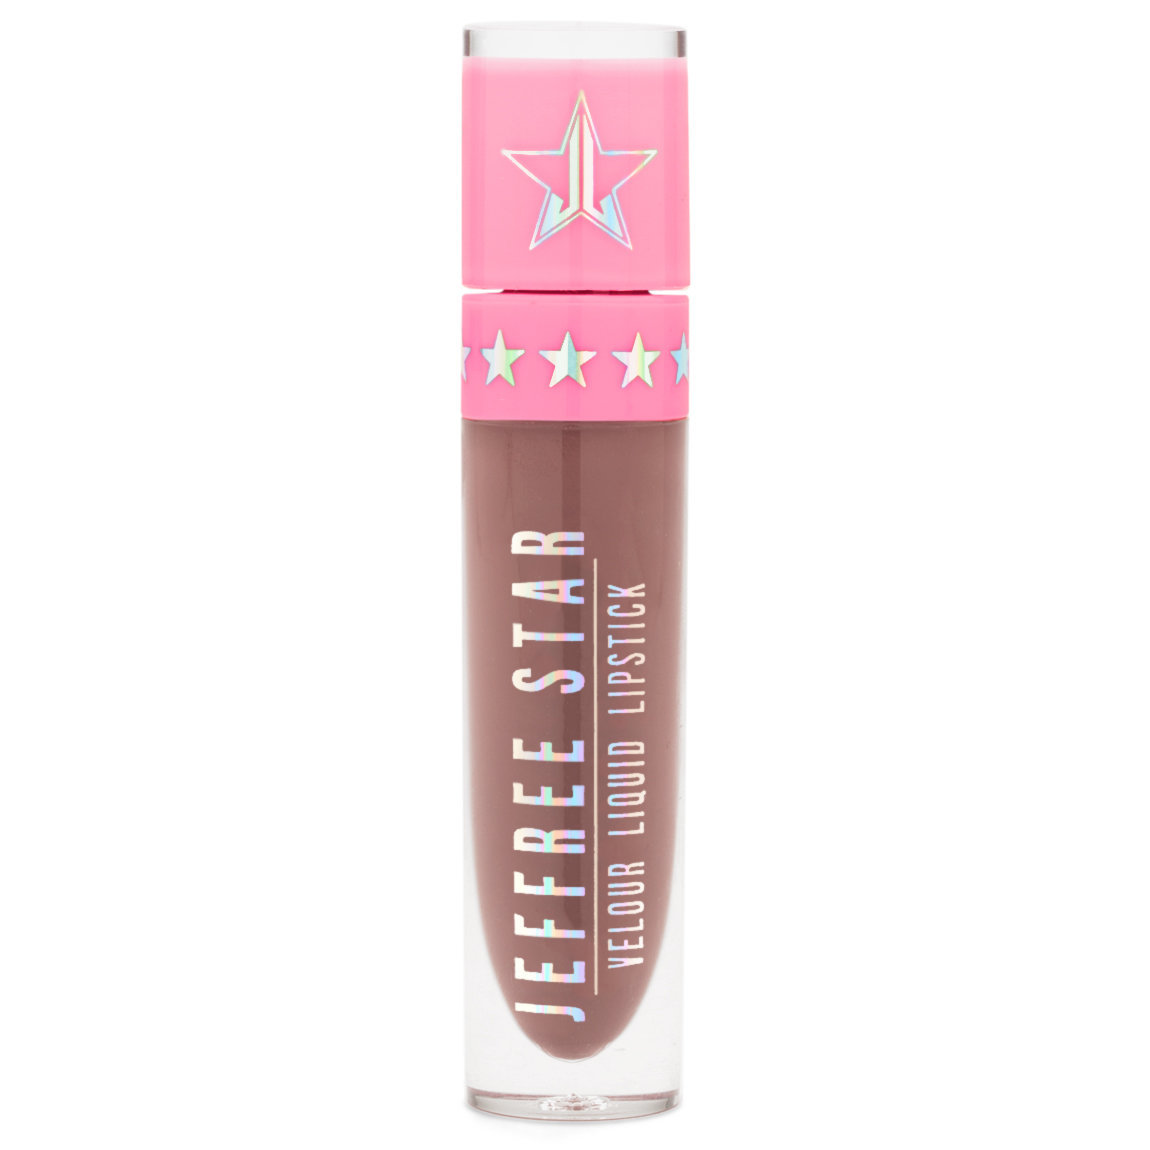 Jeffree Star Cosmetics Velour Liquid Lipstick Delicious